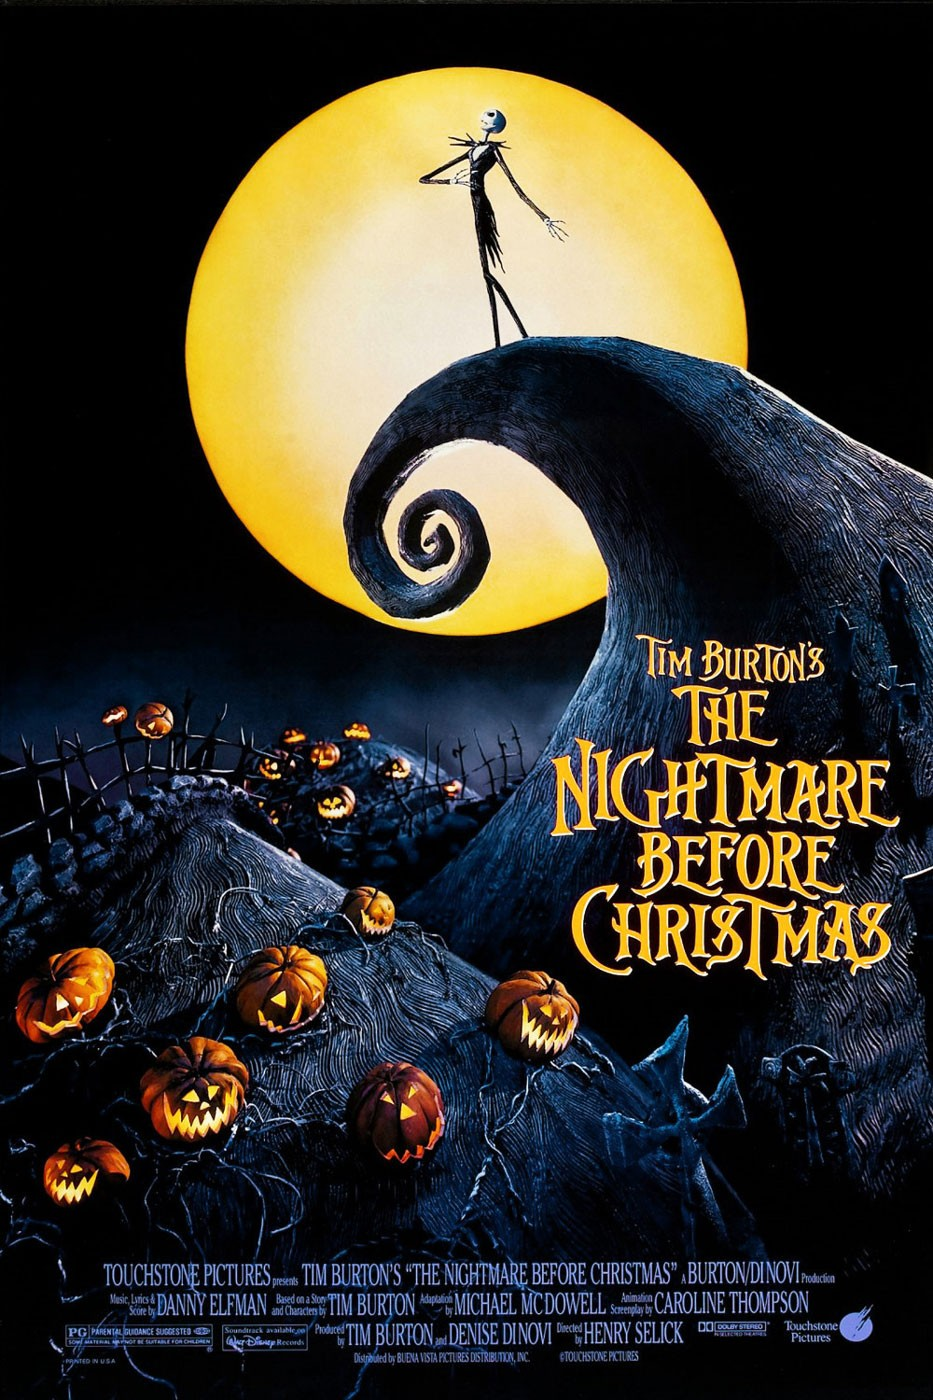 The Nightmare Before Christmas - Henry Selick (1993)